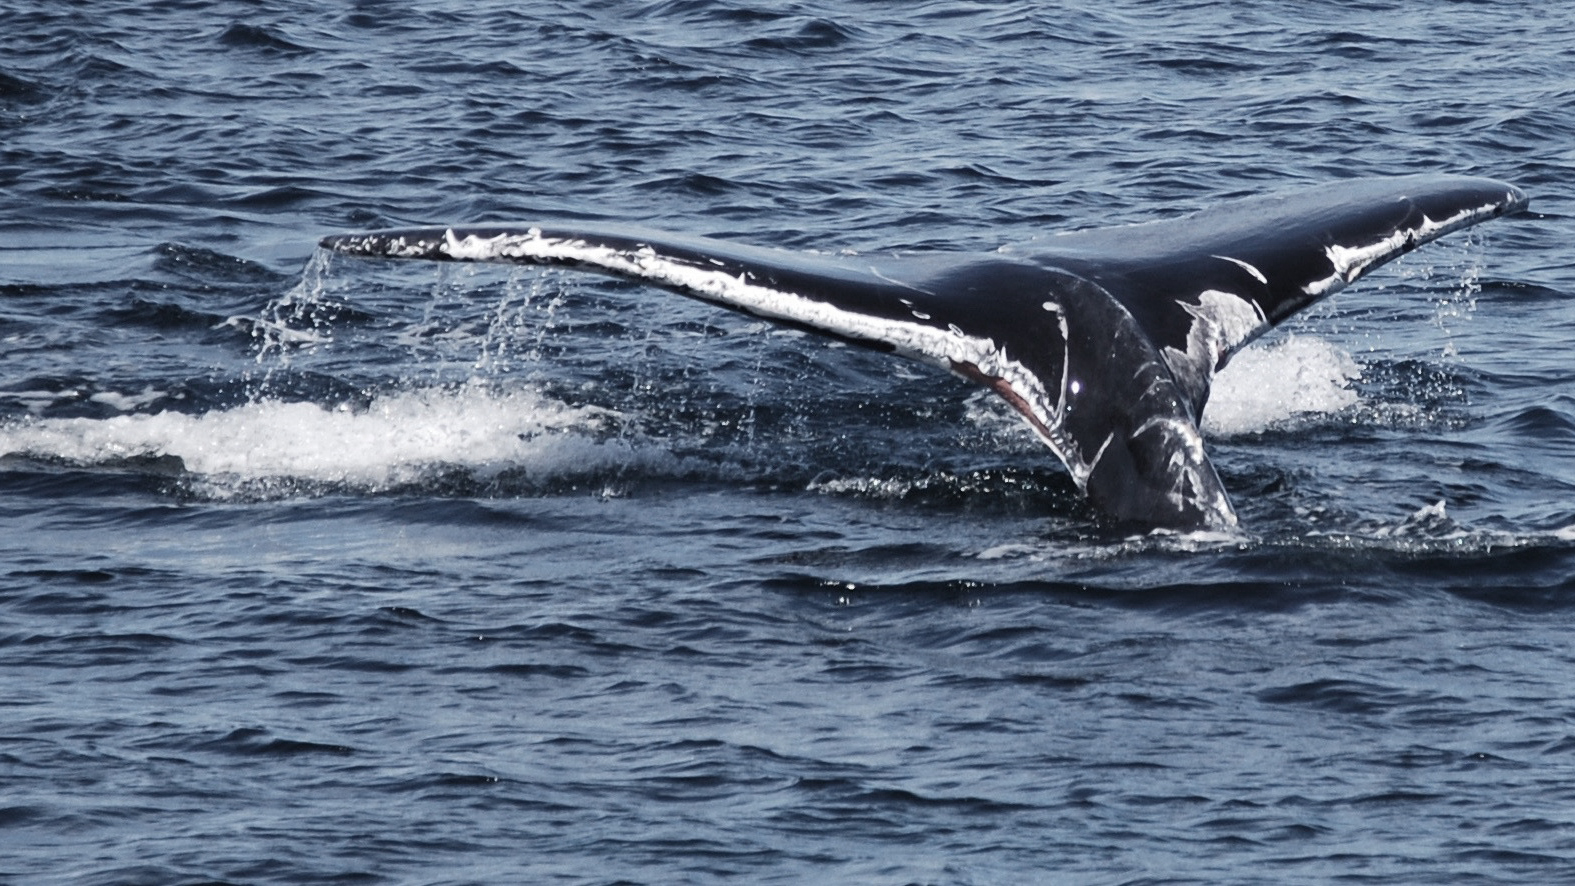 Humpback whale newly wounded by entanglement with fishing gear, Cape Cod, April 2016, Photo by Philip Hoare